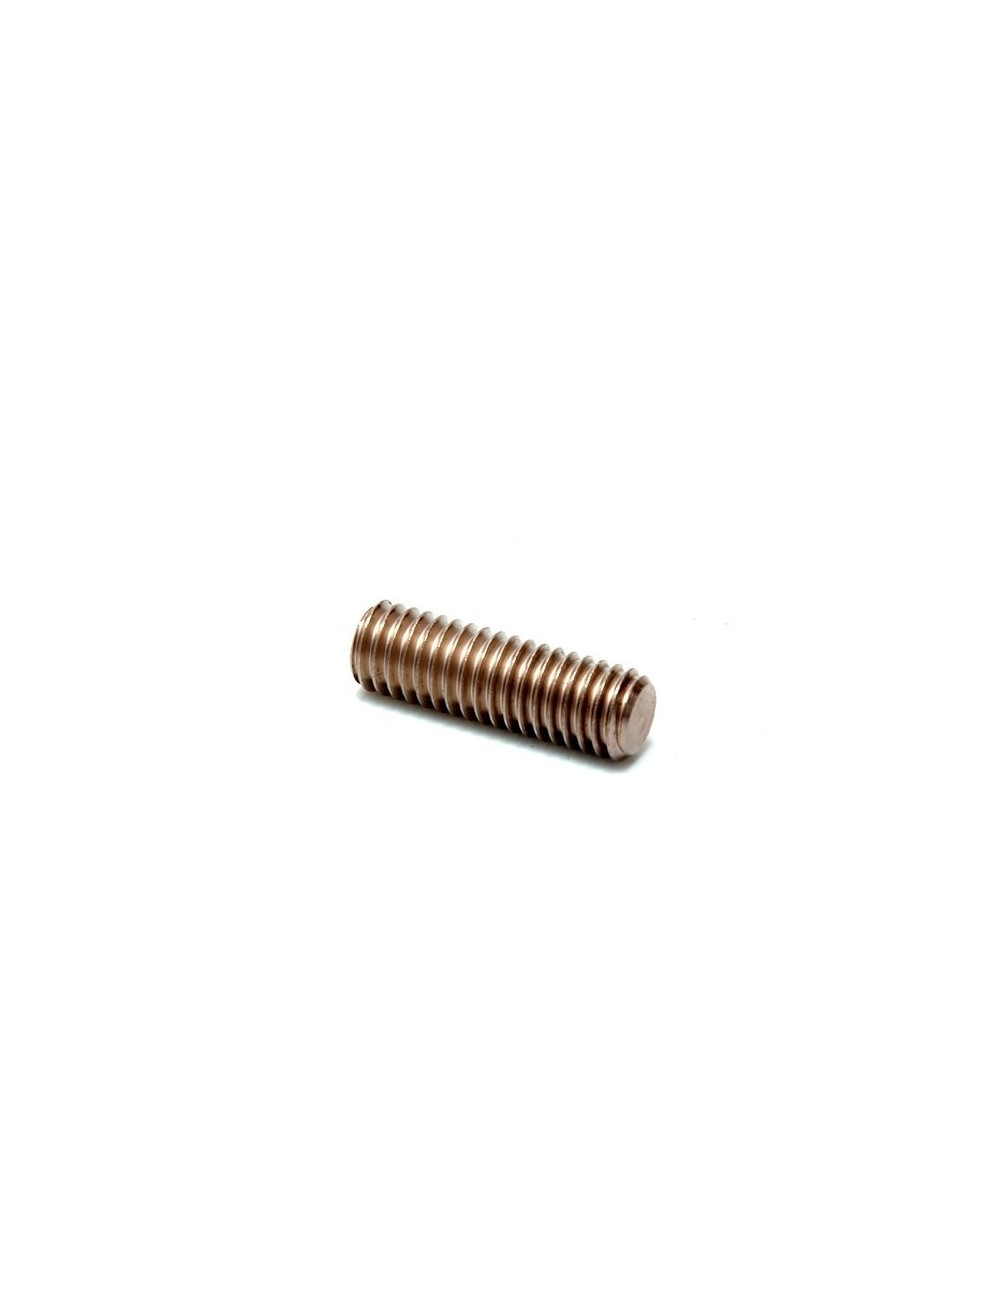 "Reduction screw 3/8"" L-28mm"